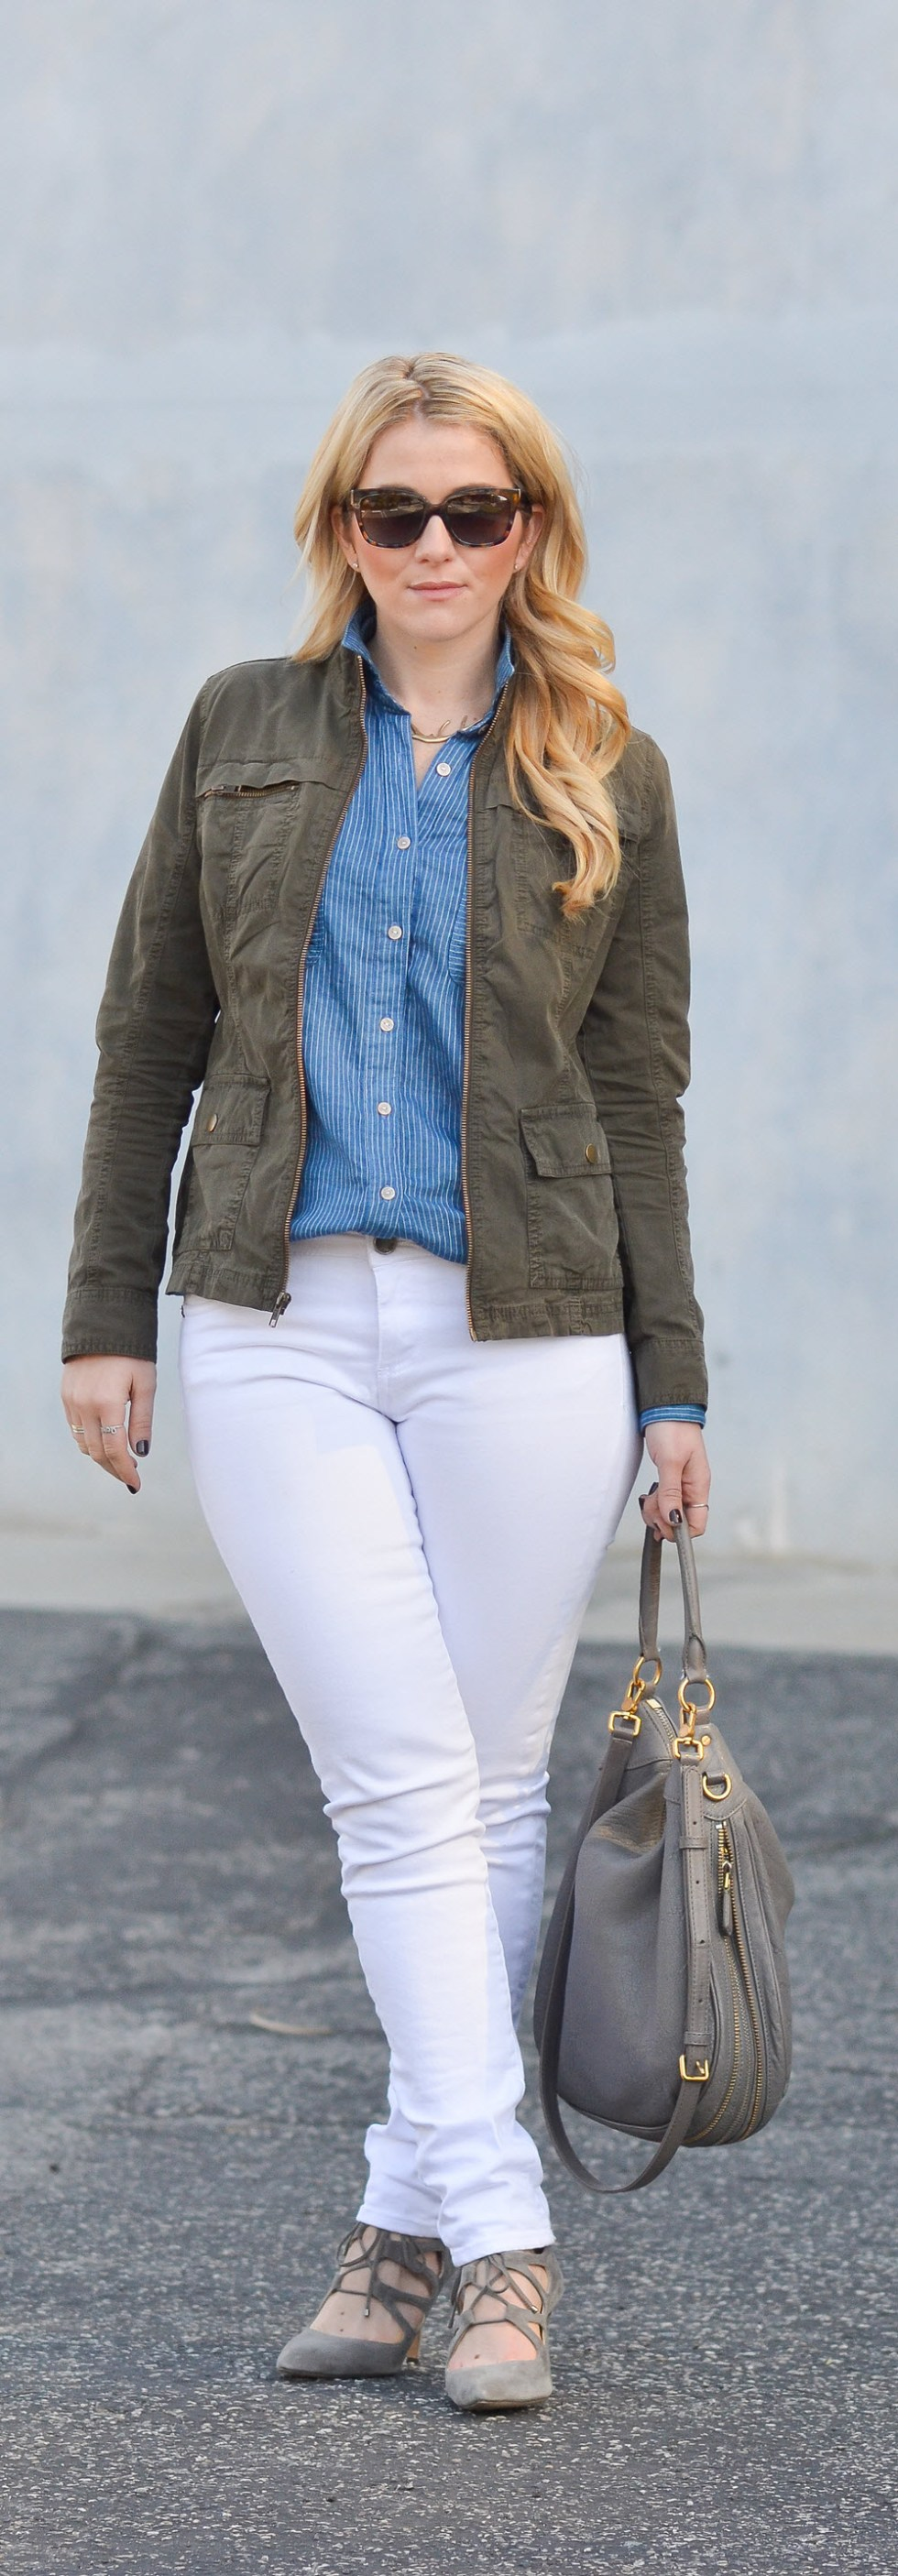 California Tailored Blue + White Button Down Shirt + Jeans - What I Wore LA Street Style